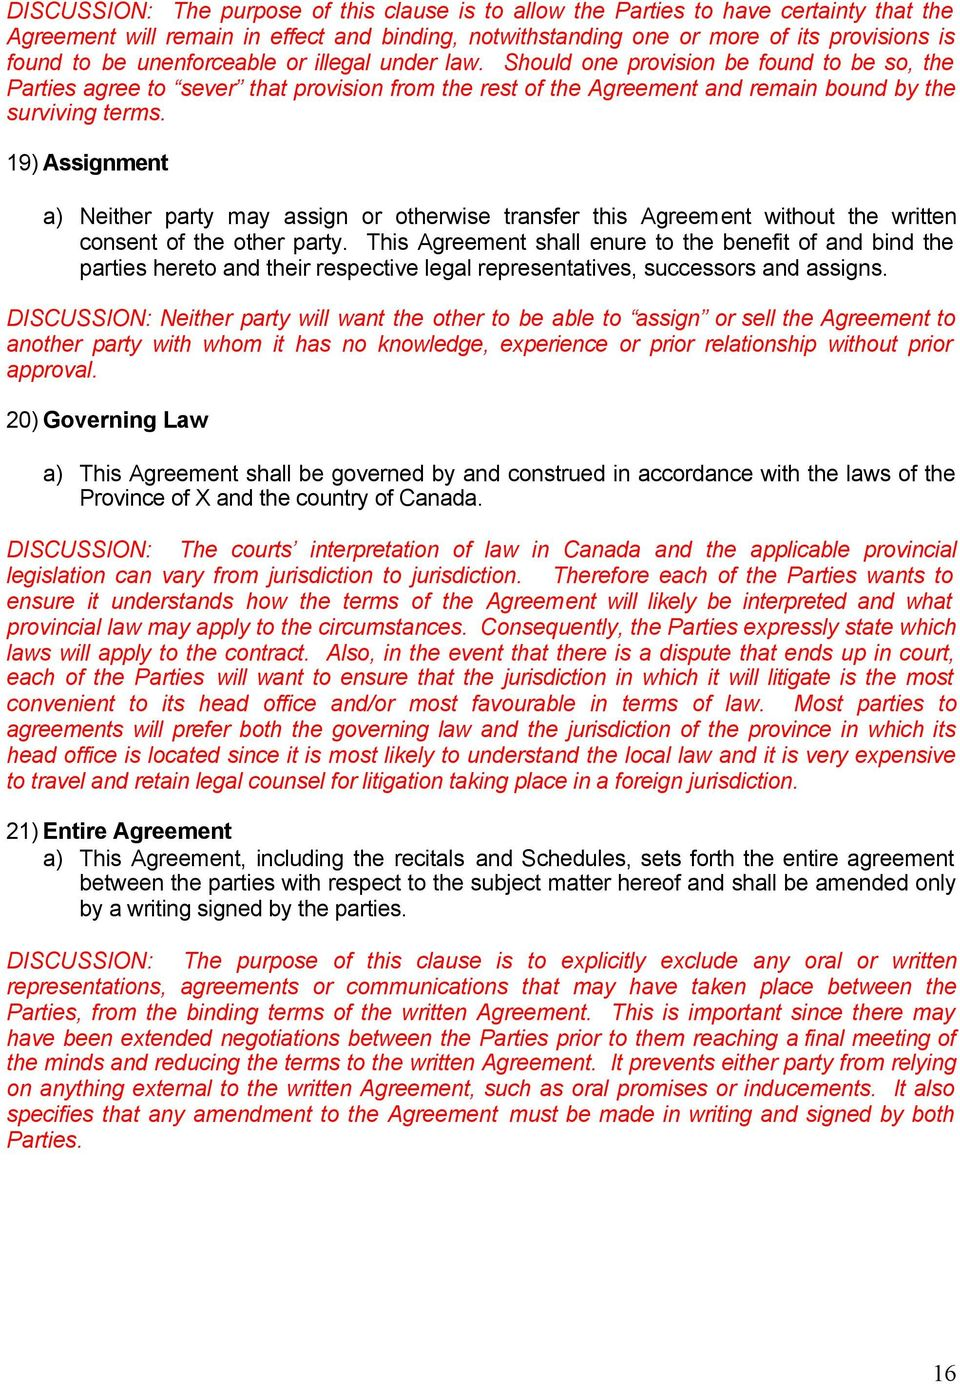 New Media Co Production Agreement Pdf